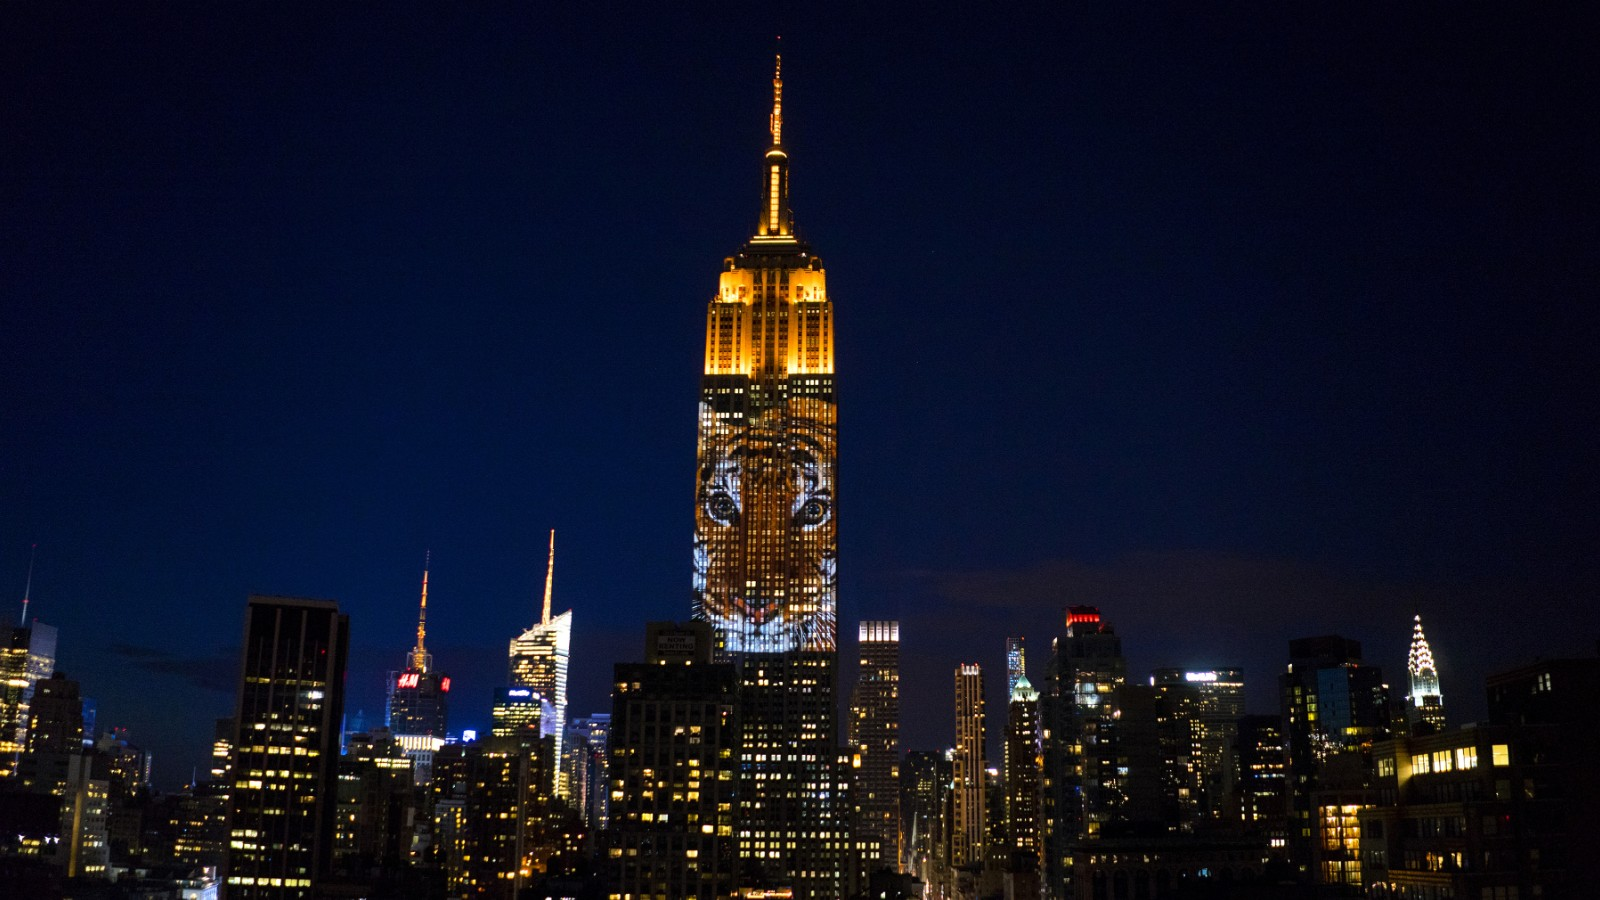 Animals On The Empire State Building